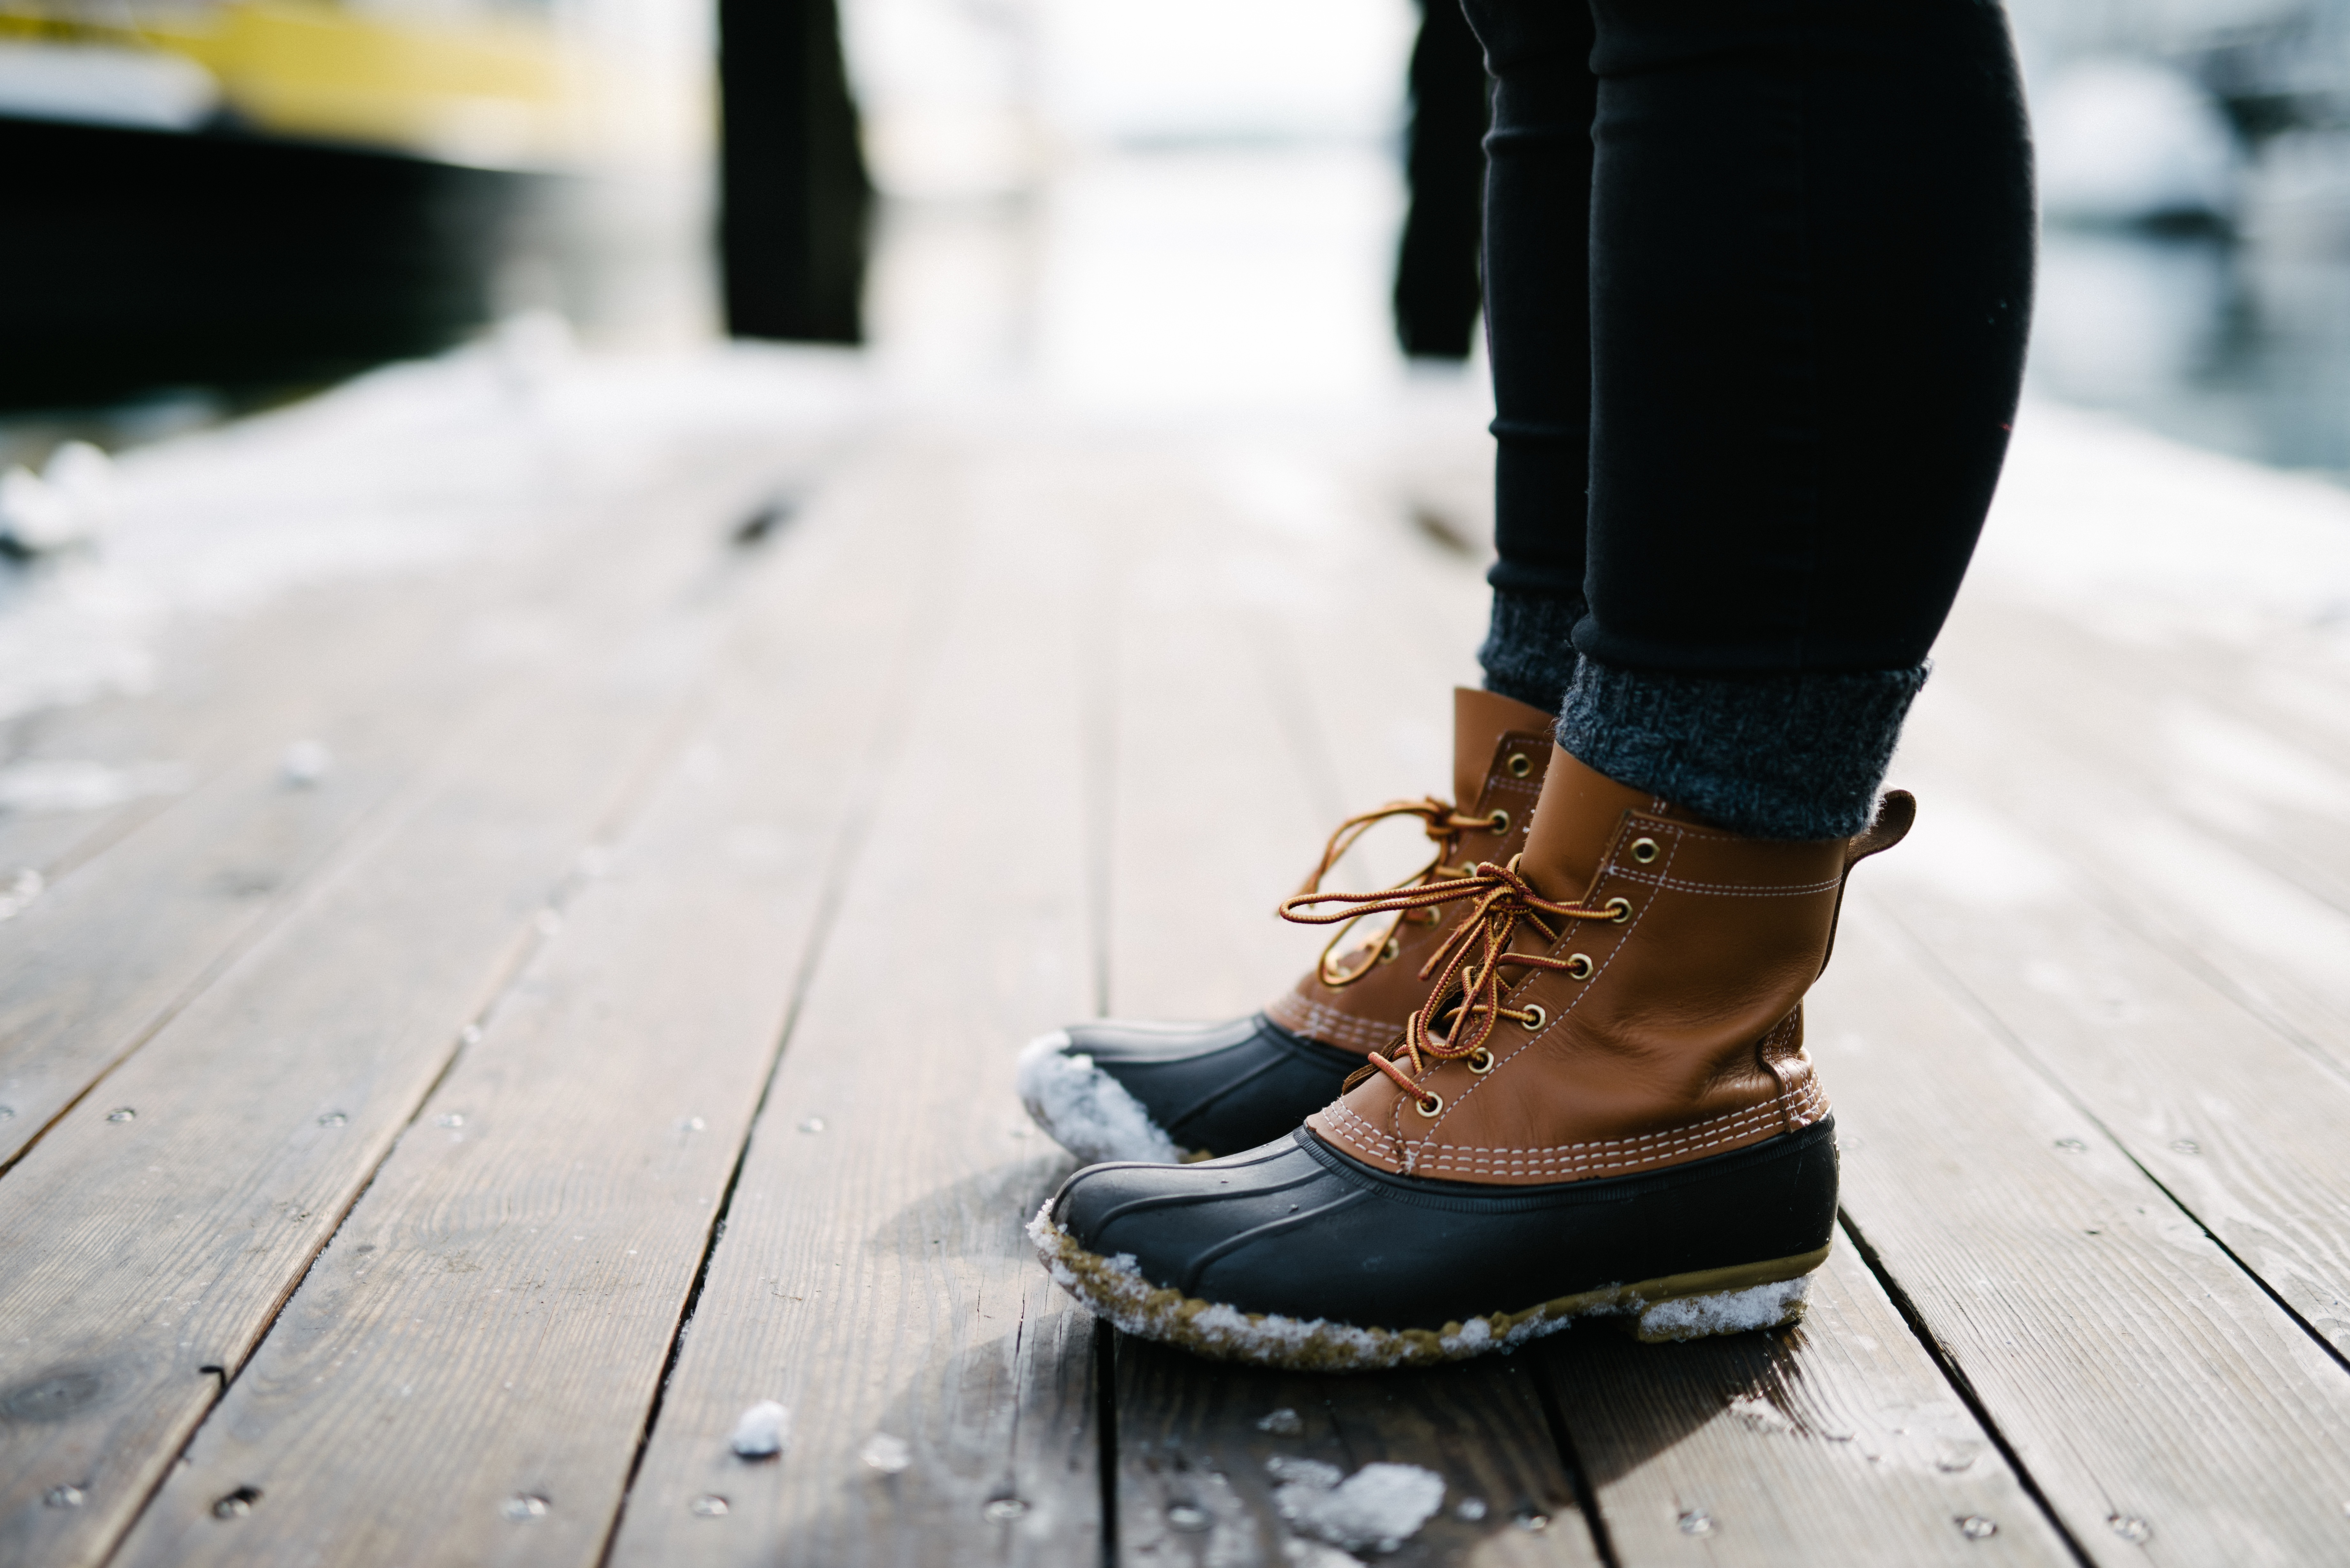 6 extremely cozy boots you should be wearing to stay comfy this ~cold weather season~